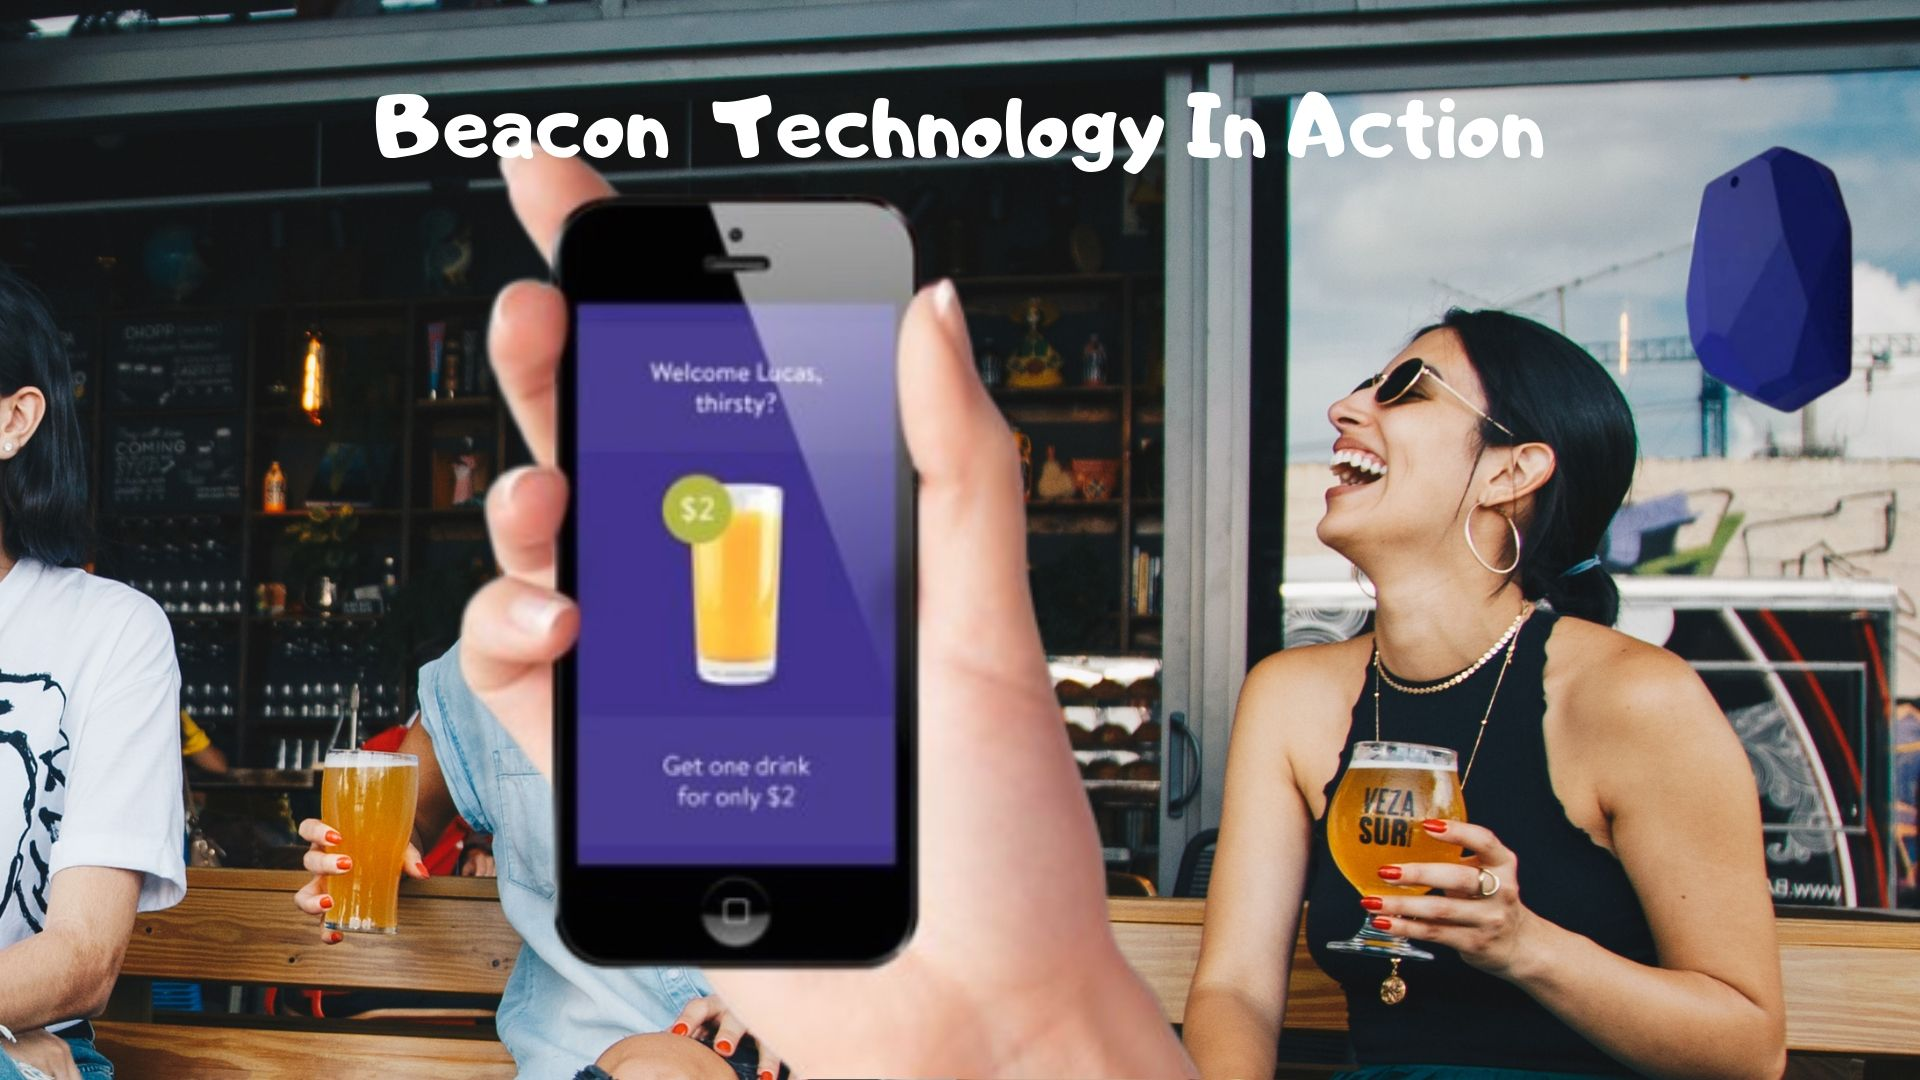 Beacon Technology in Action